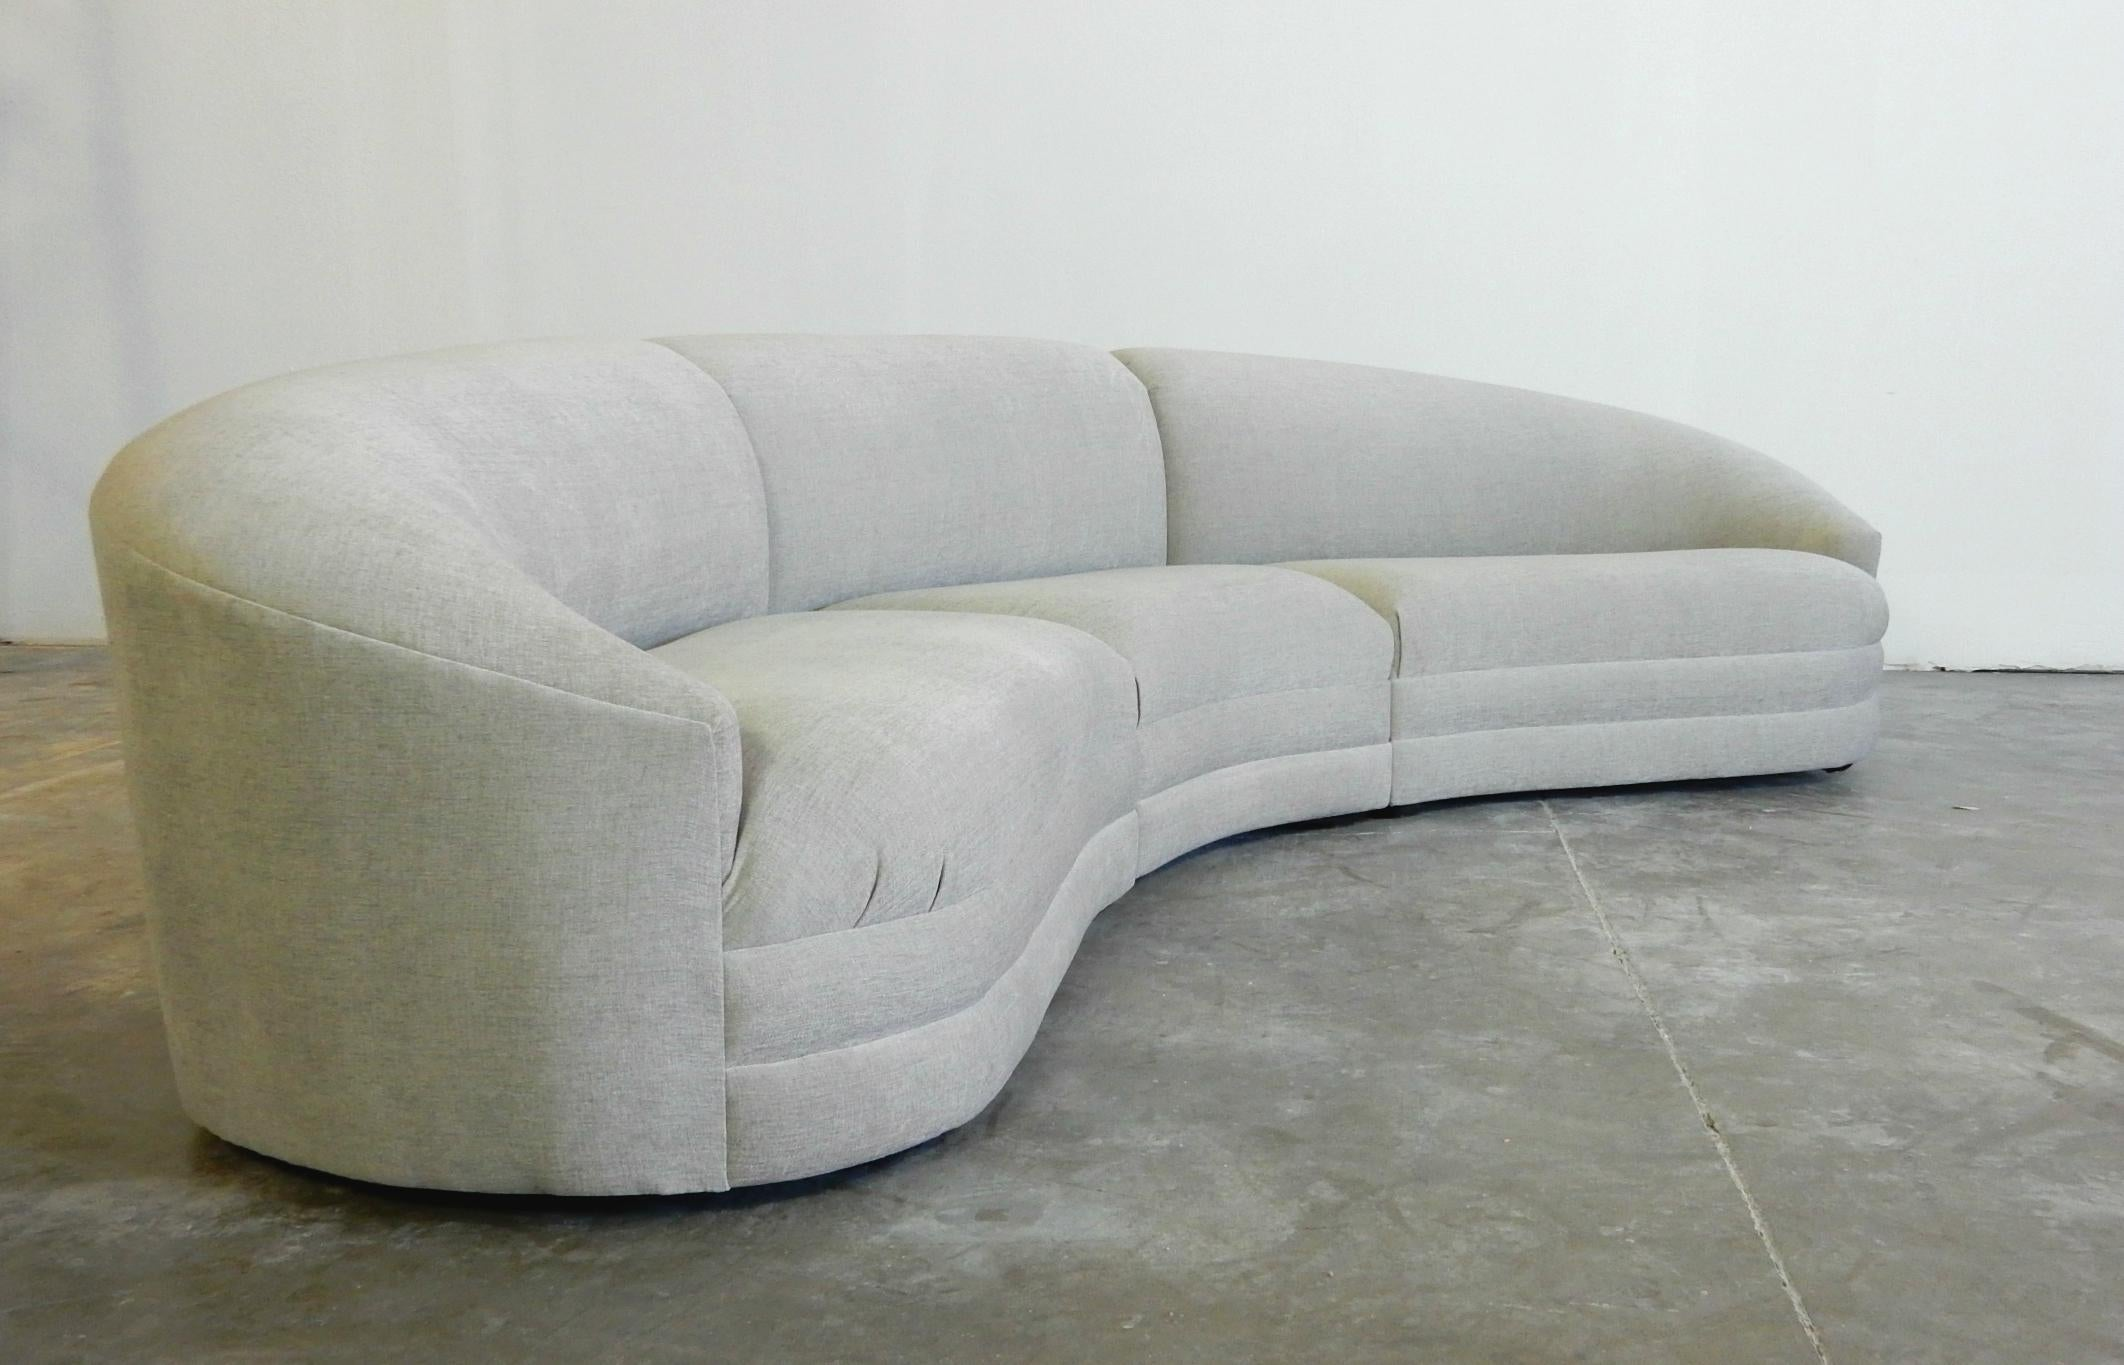 Seductive Grey Sectional Sofa, Circa 1980s